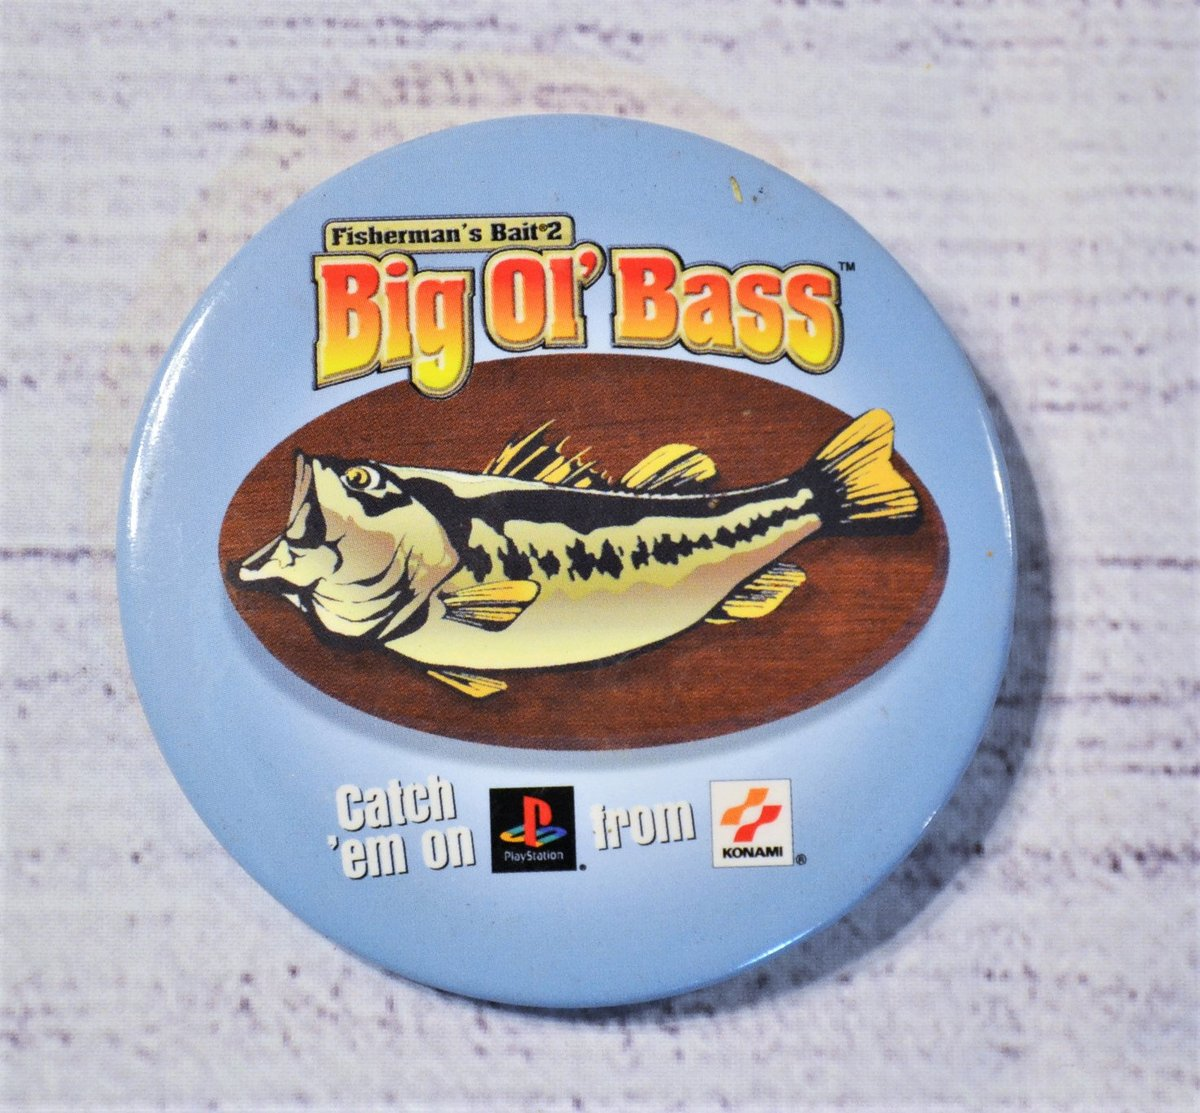 Excited to share the latest addition to my #etsy shop: Vintage Big Ol Bass Pinback Button Fishermans Bait Funny Advertising Promotional Collectible Pin PanchosPorch  #blue #panchosporch #shabbycottageboho #collectiblevtg #vintagehomedecor #pinpin